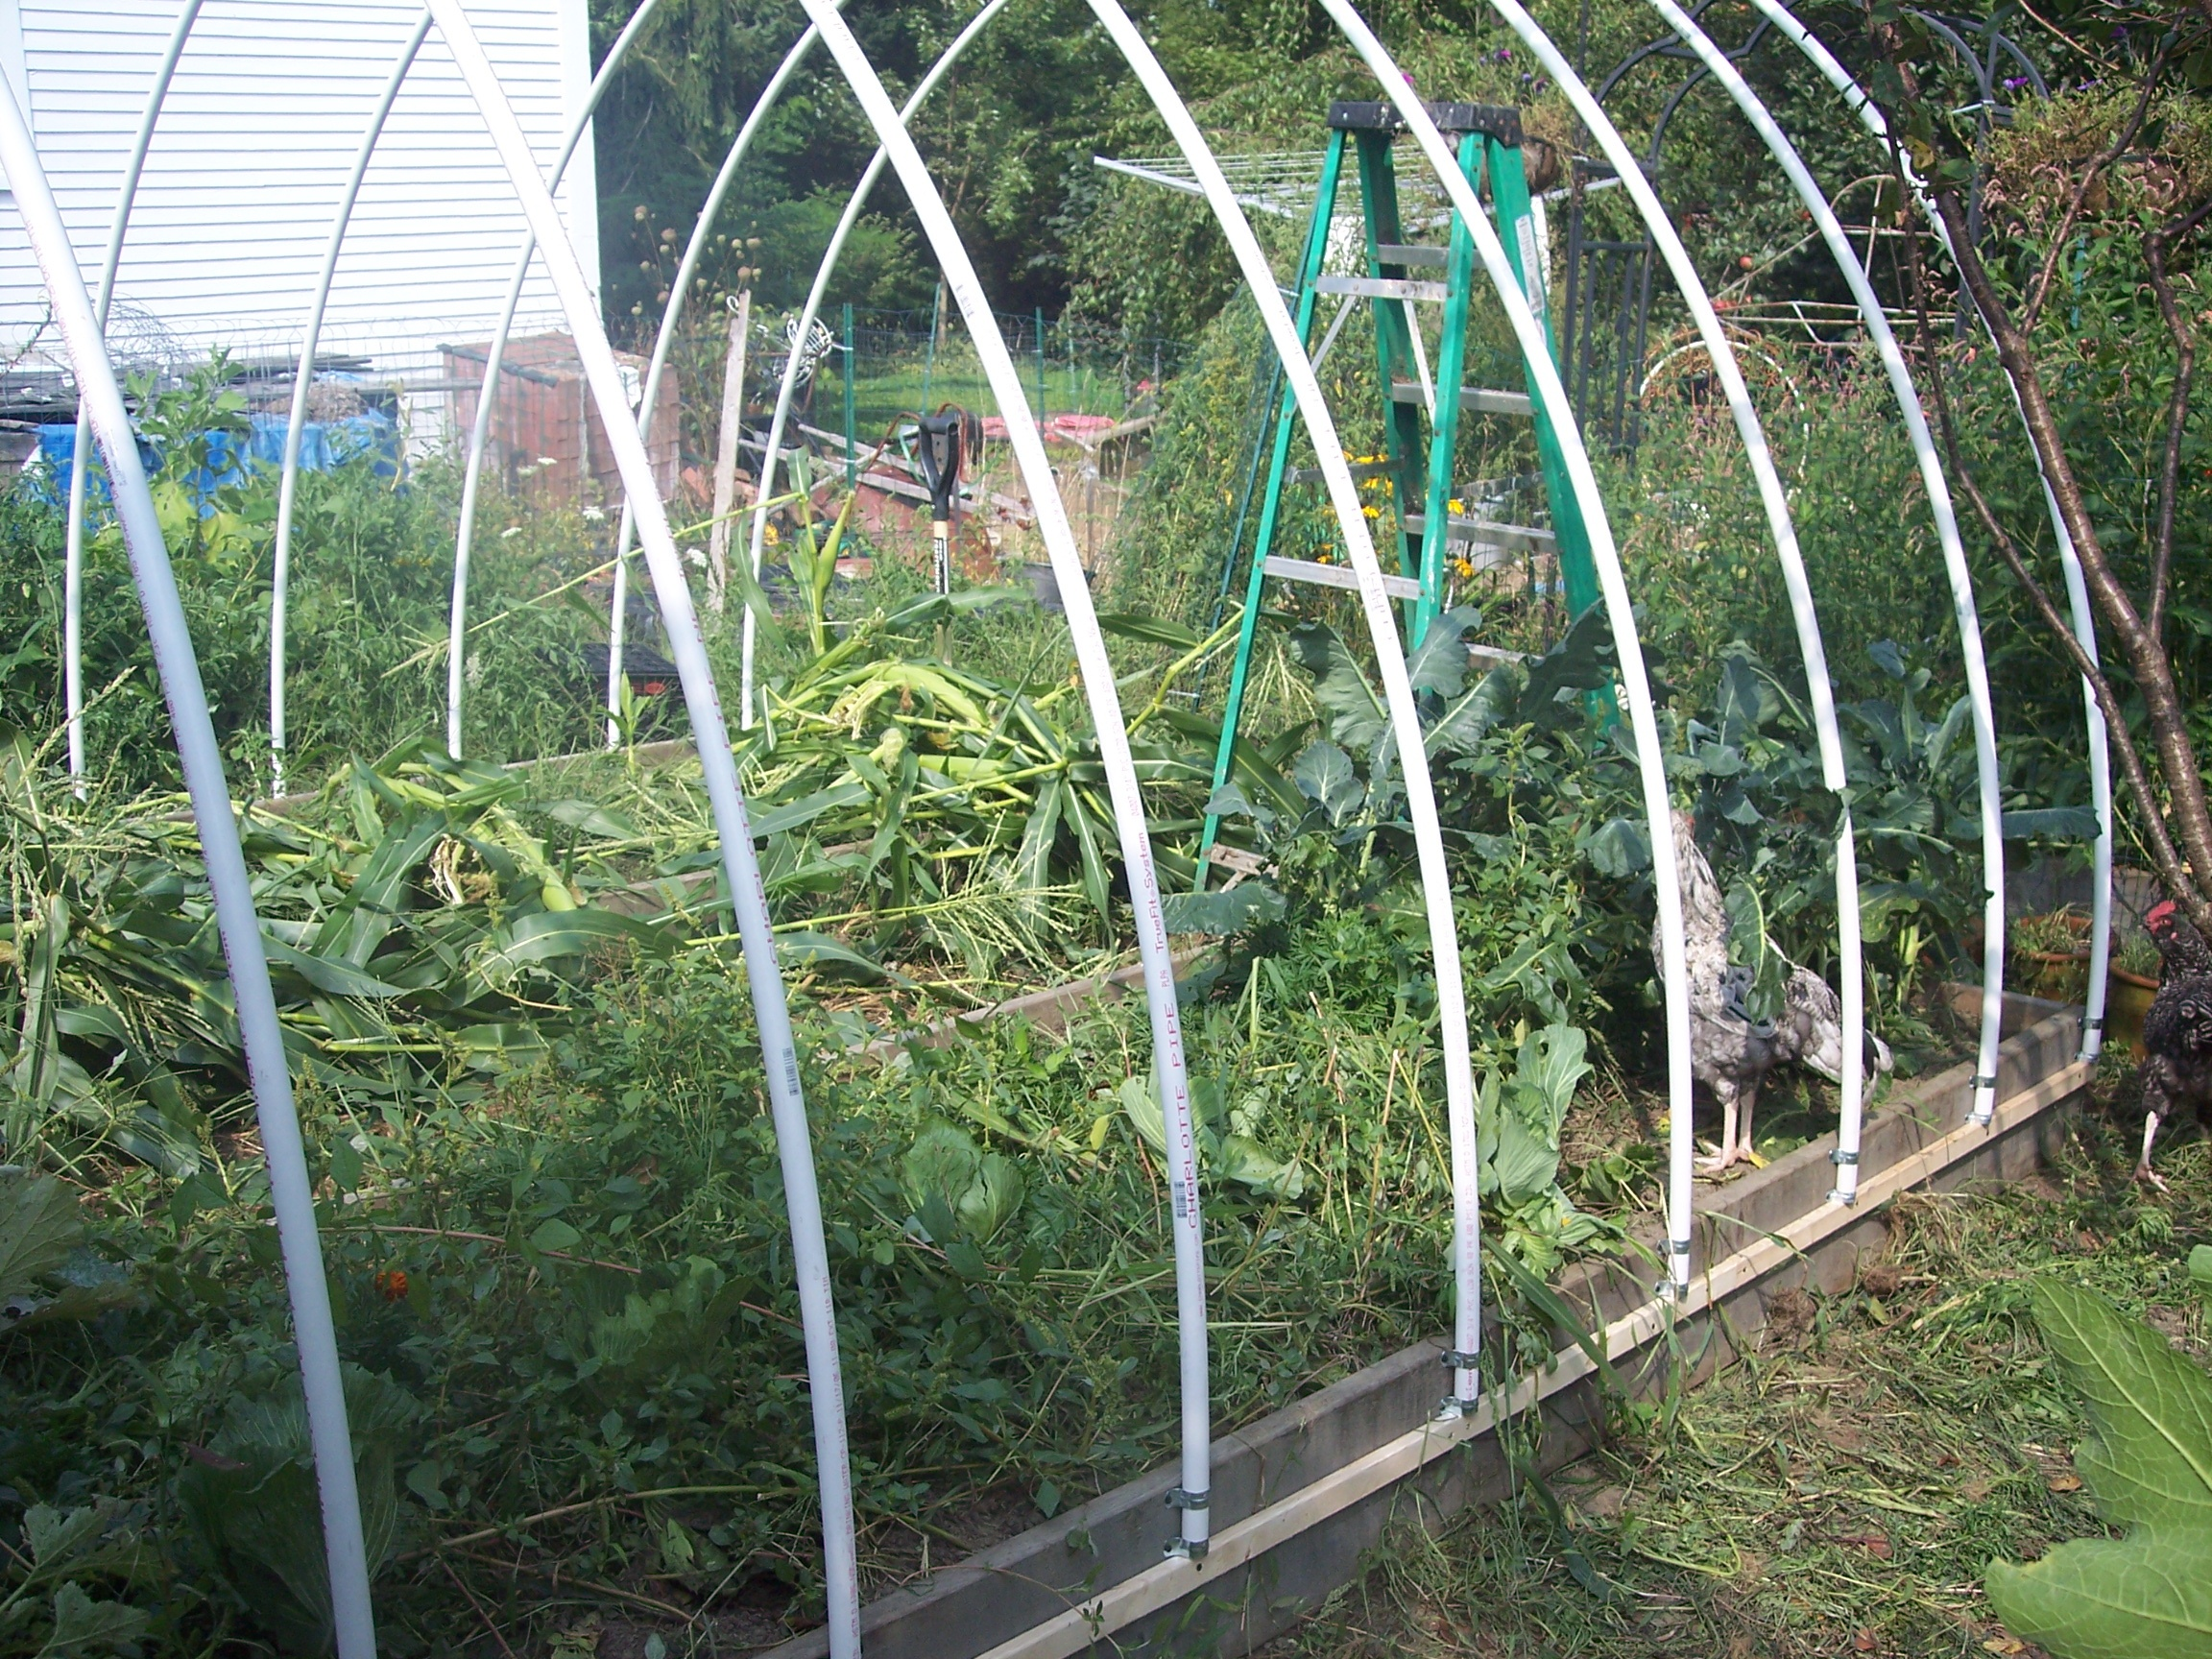 Raised Bed Greenhouse Plans Free - 1000+ ideas about Shed Plans on best greenhouse plans, cold frame greenhouse plans, solar greenhouse plans, greenhouse layout plans, gothic arch greenhouse plans, dome greenhouse plans, diy greenhouse plans, pvc greenhouse plans, back yard greenhouse plans, mini greenhouse plans, printable greenhouse plans, stone greenhouse plans, small greenhouse plans, in ground greenhouse plans, home greenhouse plans, gothic style greenhouse plans, vintage greenhouse plans, outdoor greenhouse plans, cheap greenhouse plans, garden greenhouse plans,